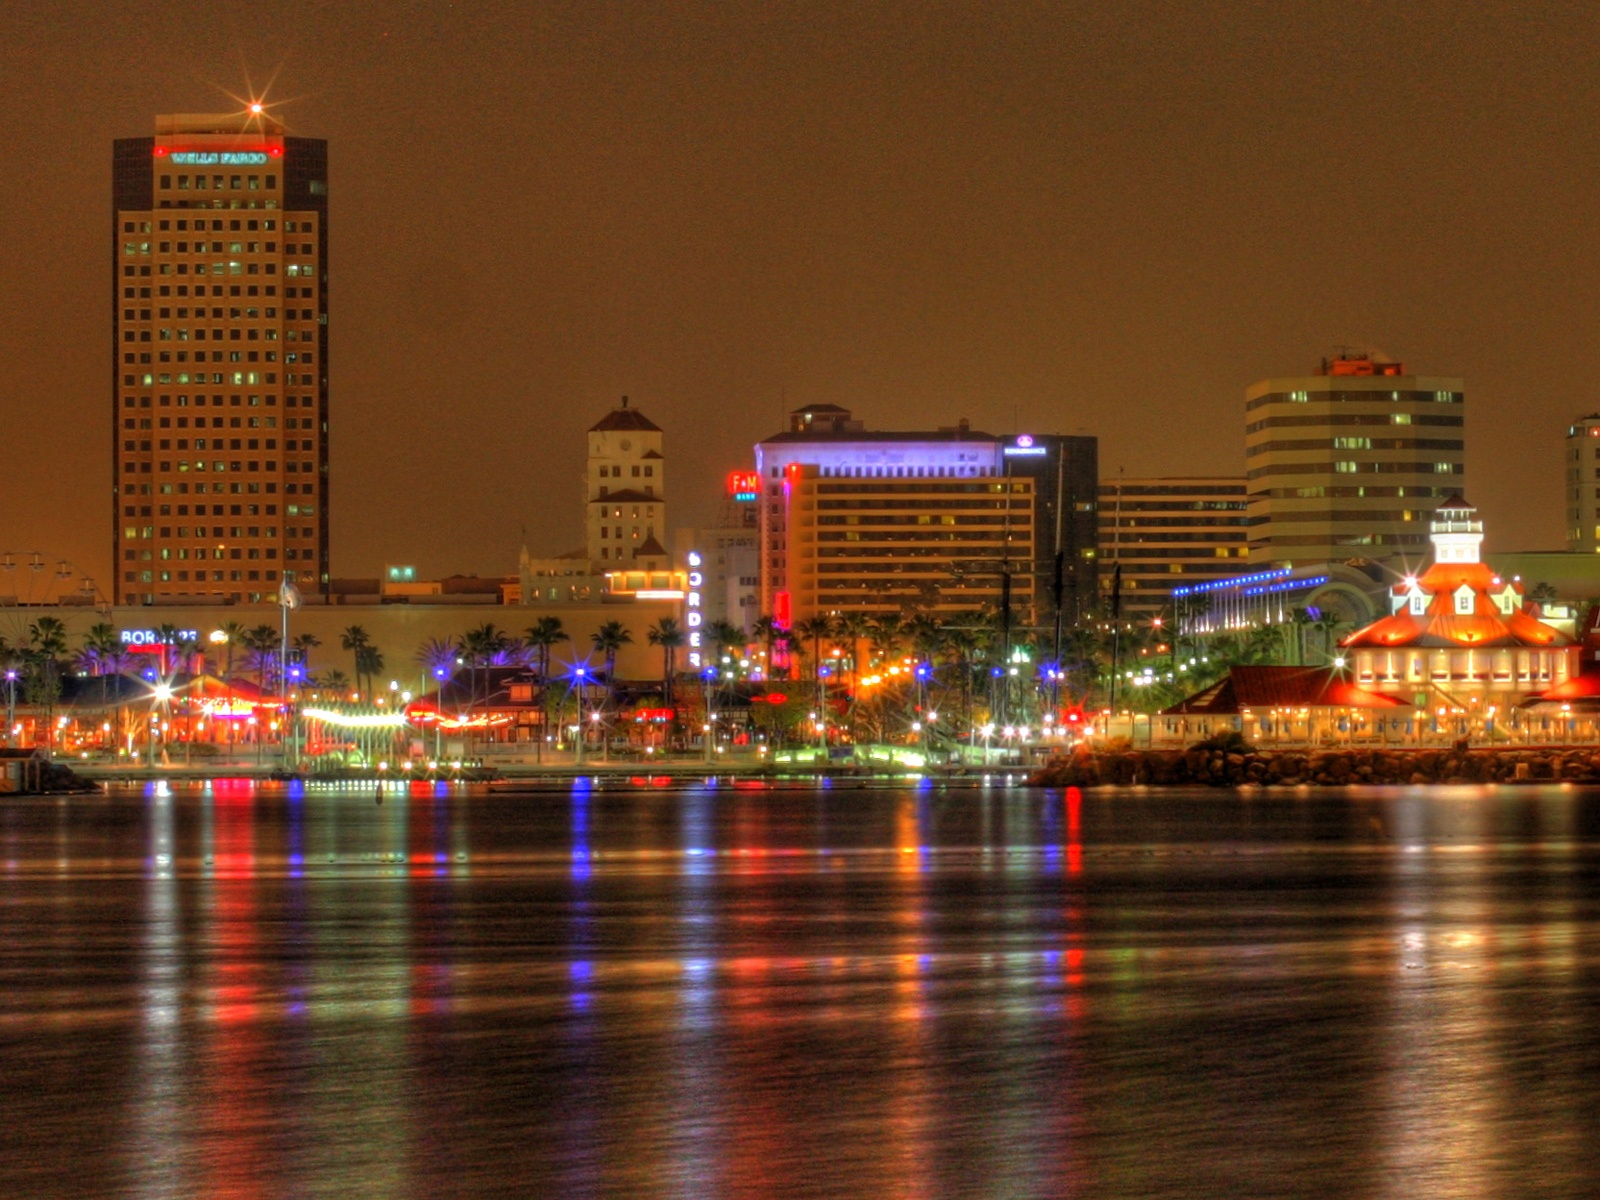 Long Beach at night 1600x1200 wallpaper download page 631435 1600x1200